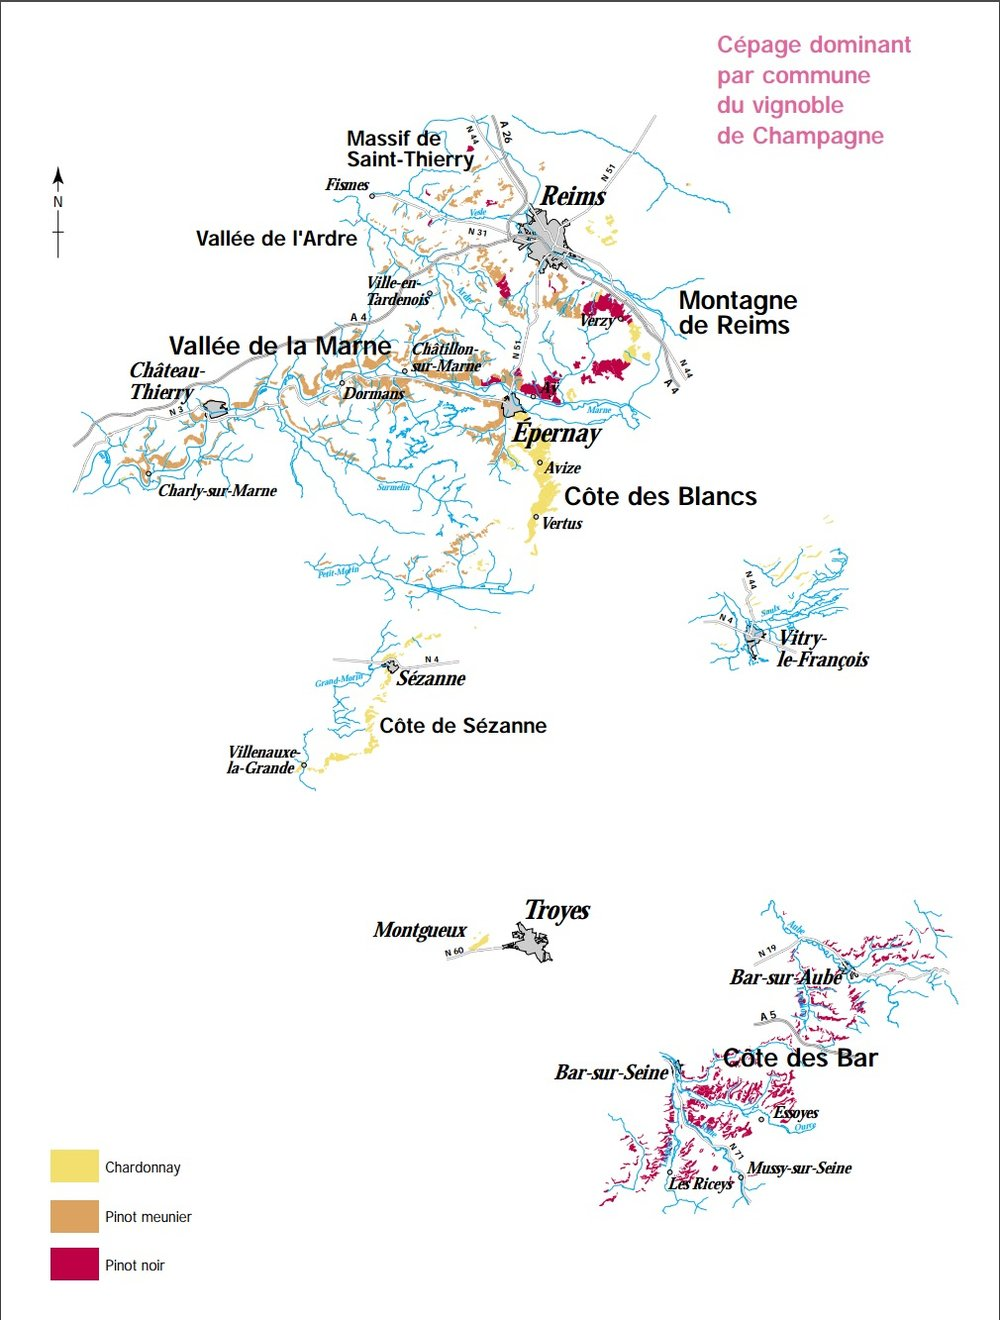 Maps Of Champagne By Grape Plantings 20 Subregions And More